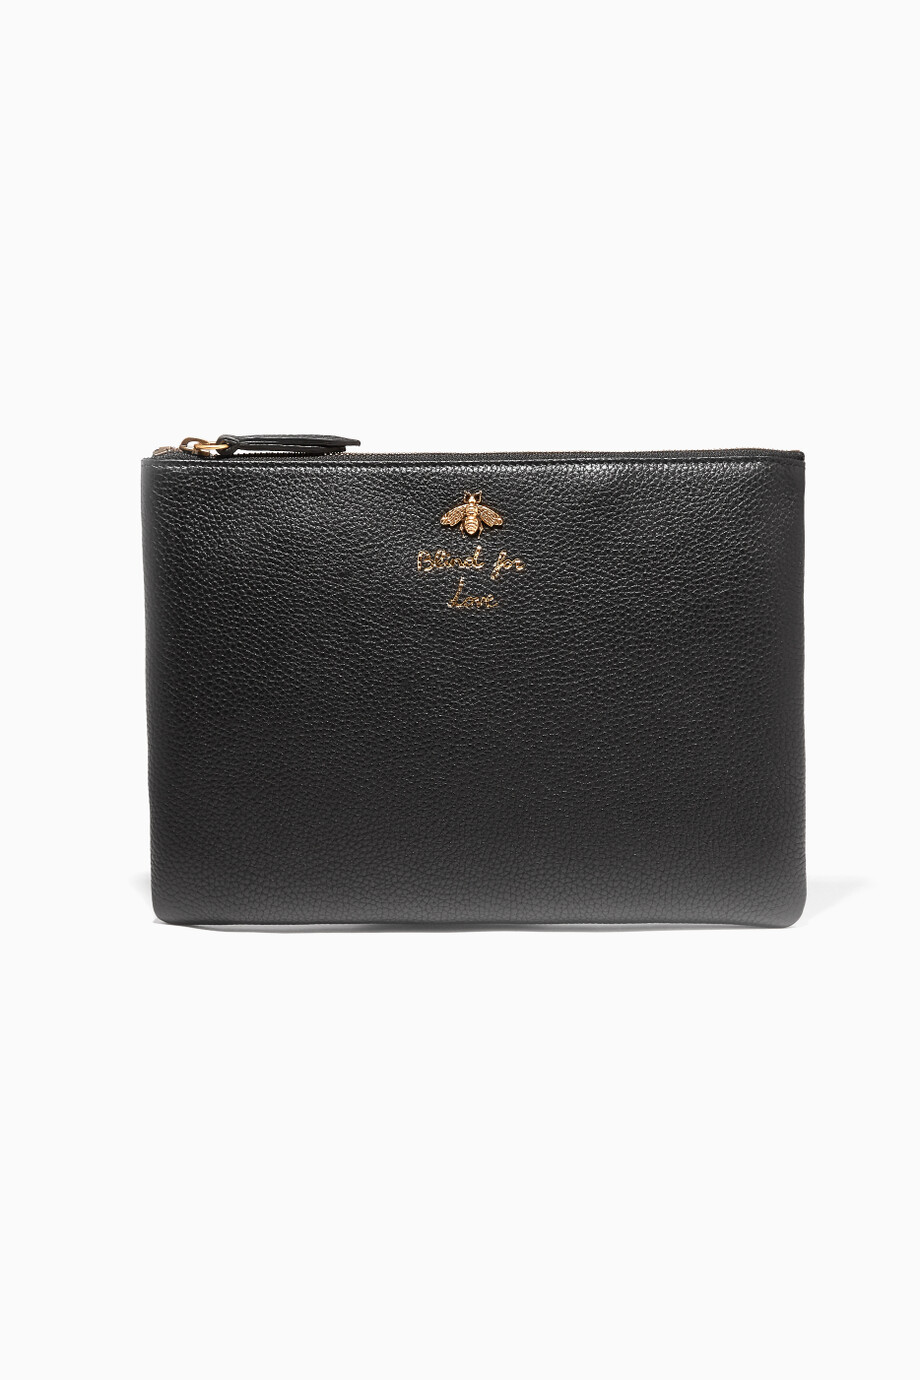 853cfb9e07069 Shop Gucci Black Black Blind for Love Leather Pouch for Women ...